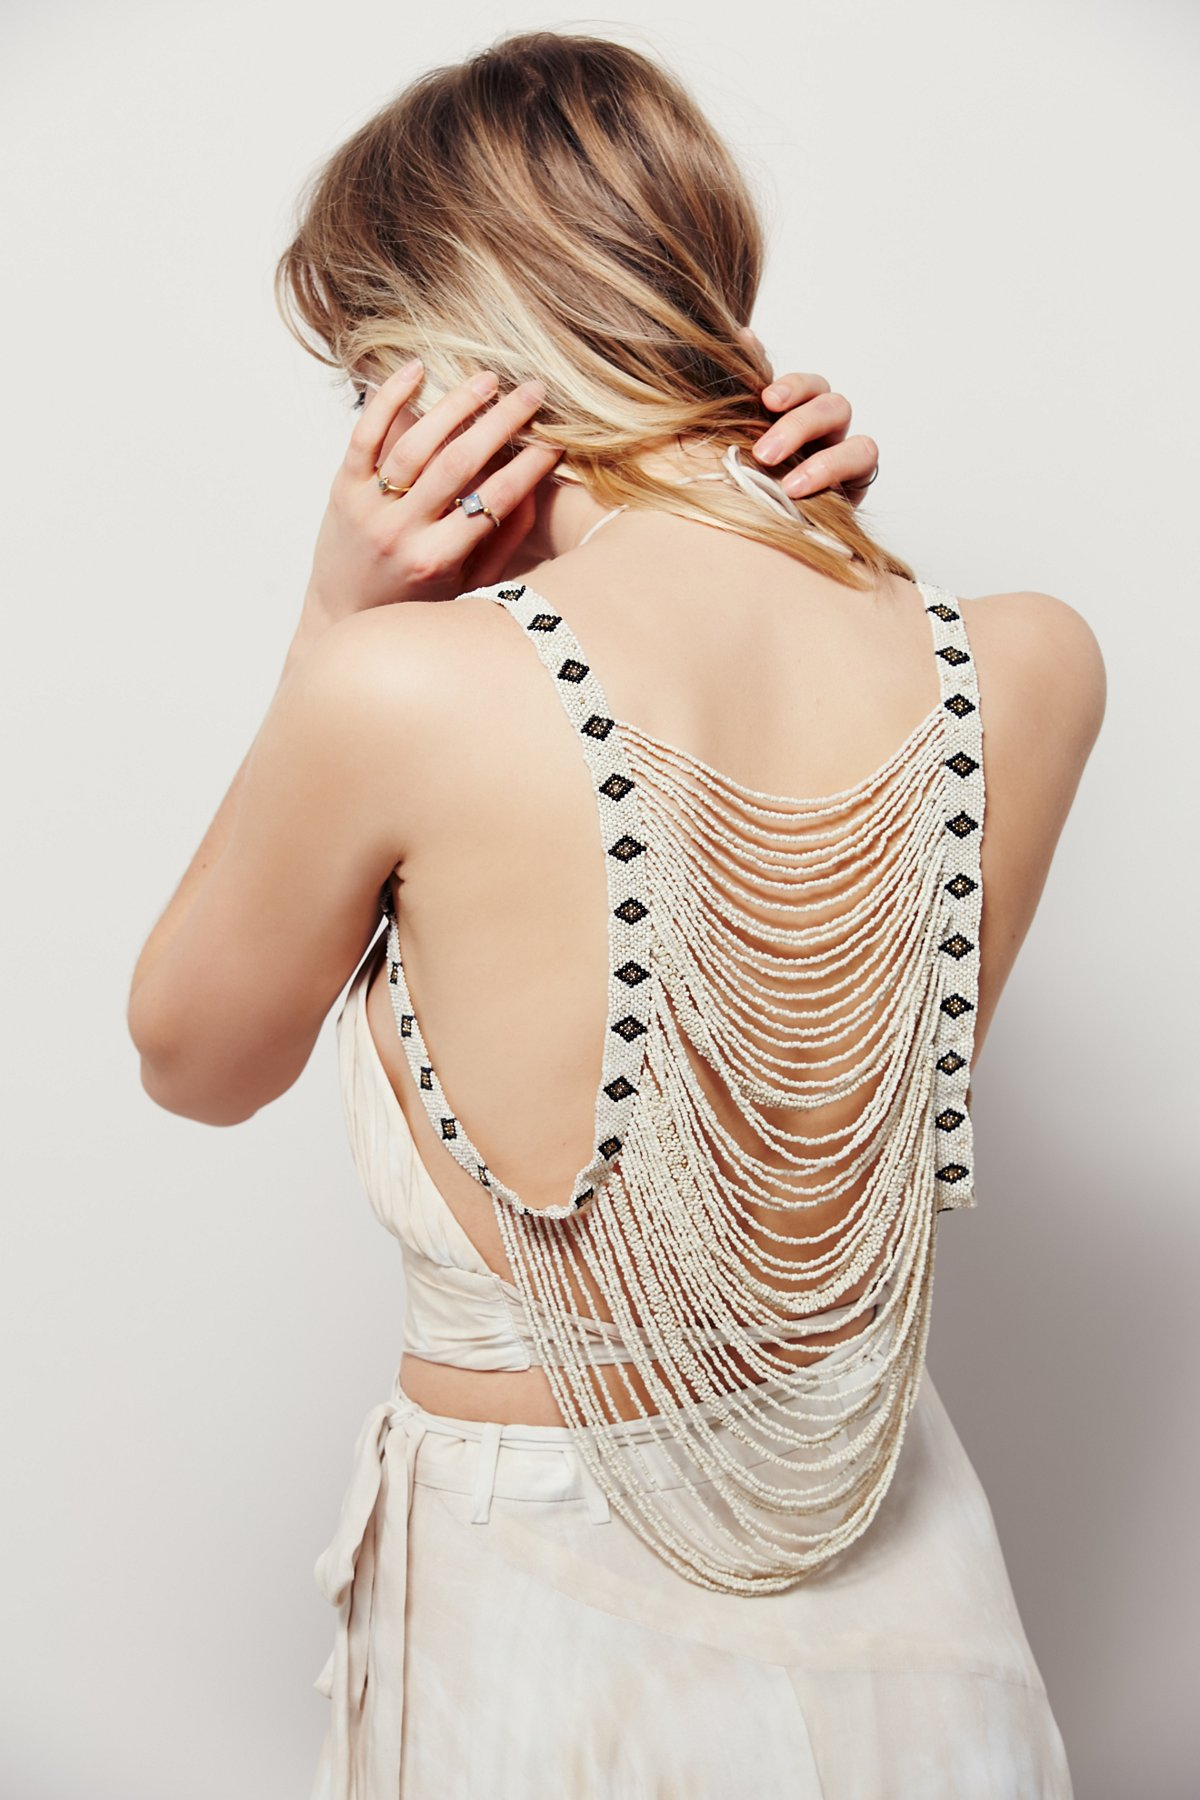 Lyric Beaded Bodypiece